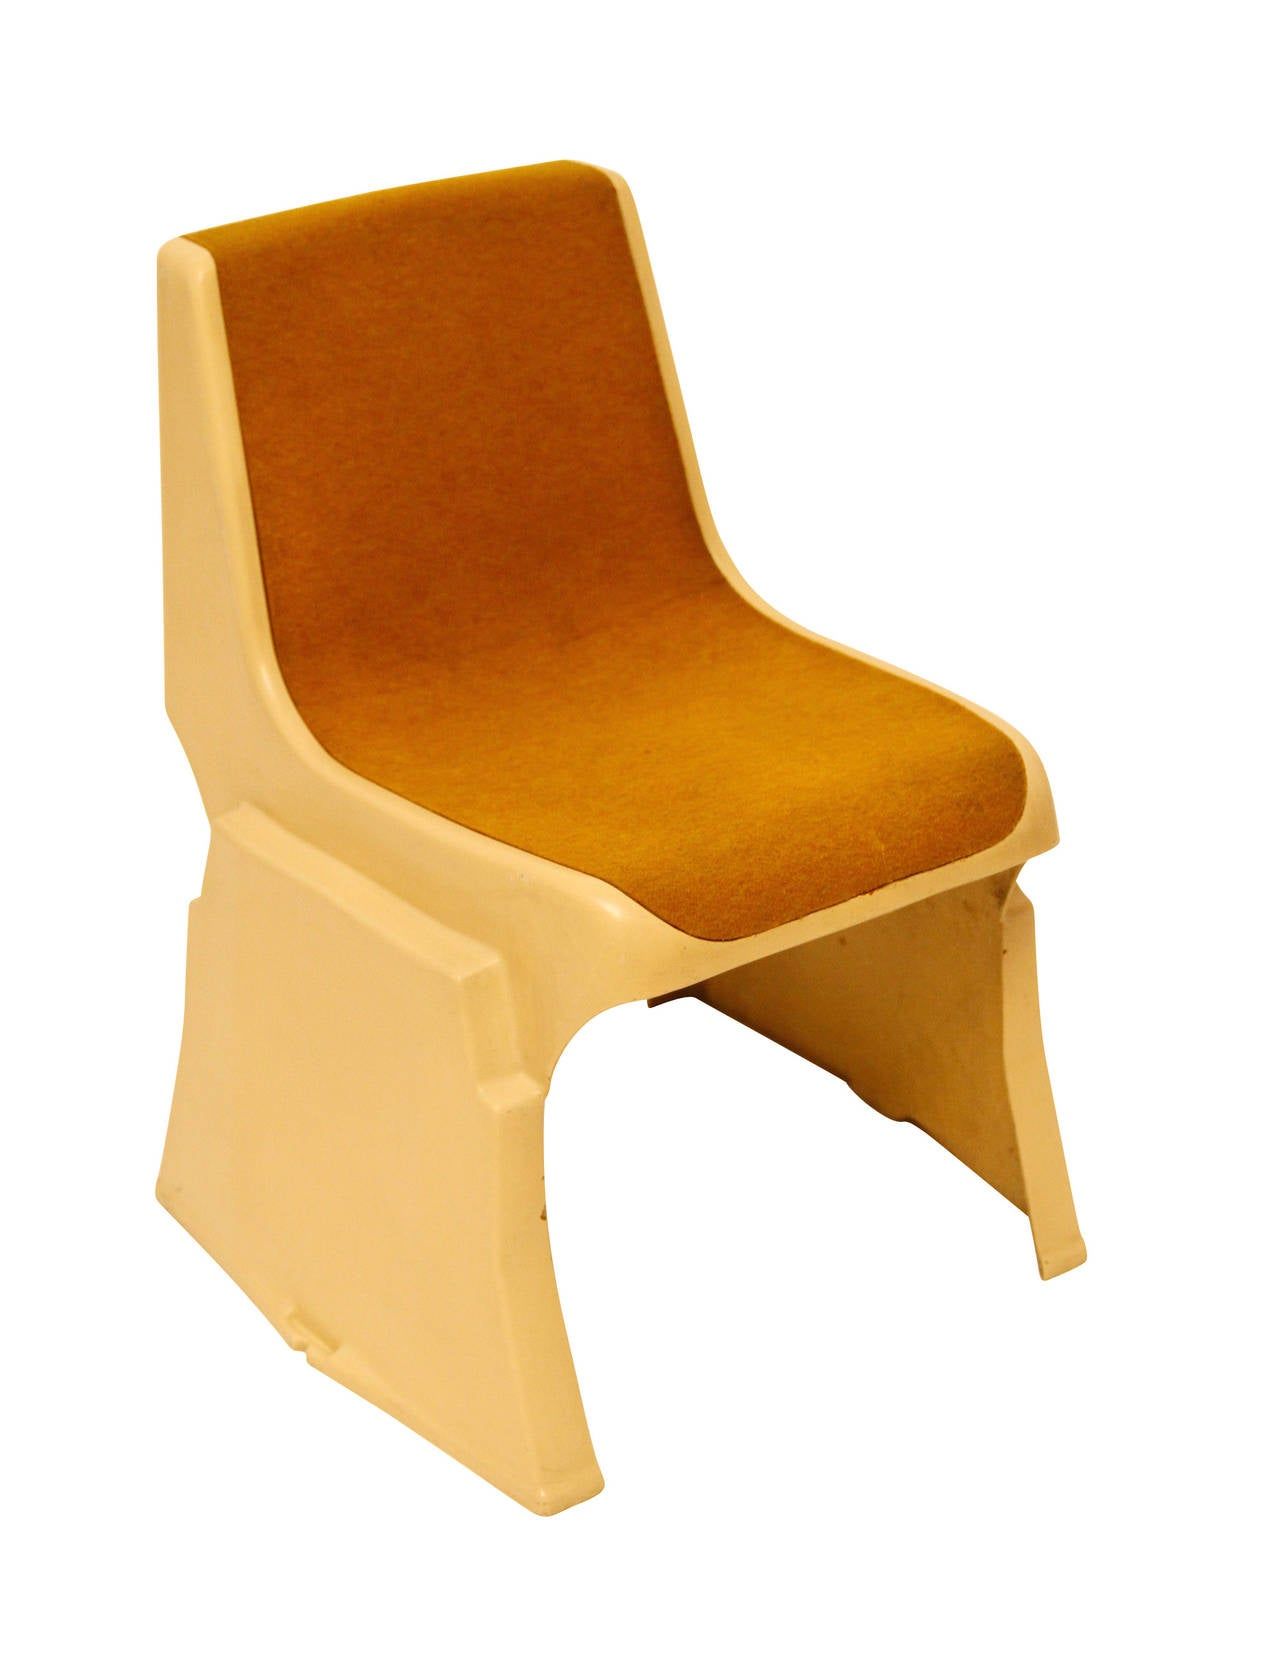 Late 20th Century Up to 8 Very Rare Brutalist Austrian Stacking Chairs, 1970s For Sale